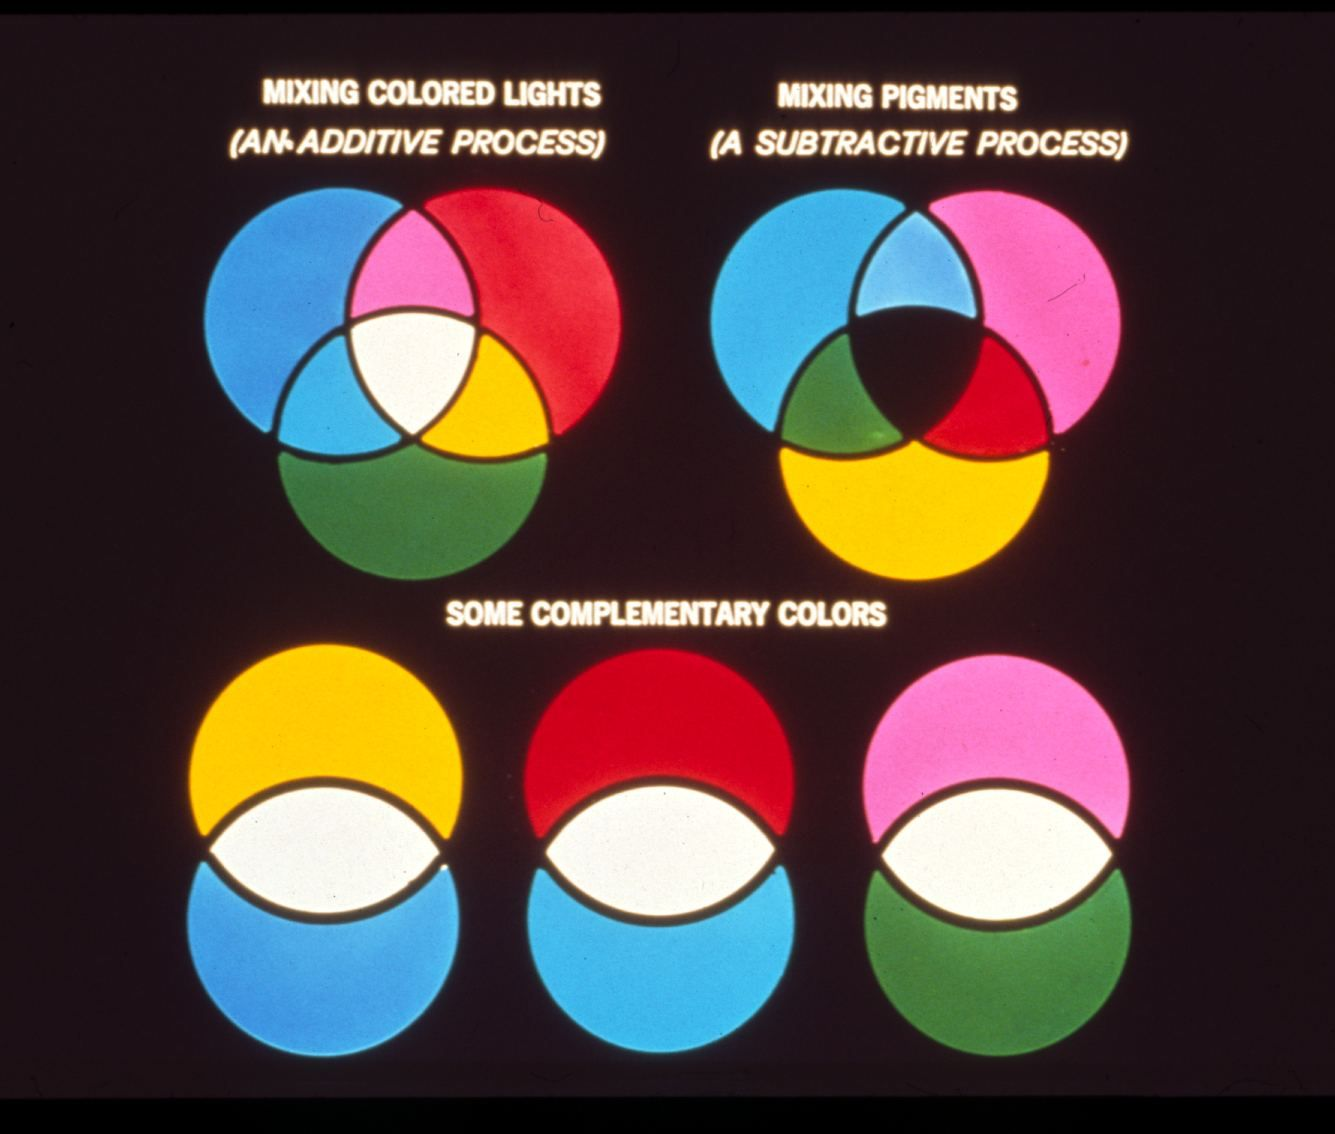 Mixing Lights Additive Color Theory Pigments Subtractive